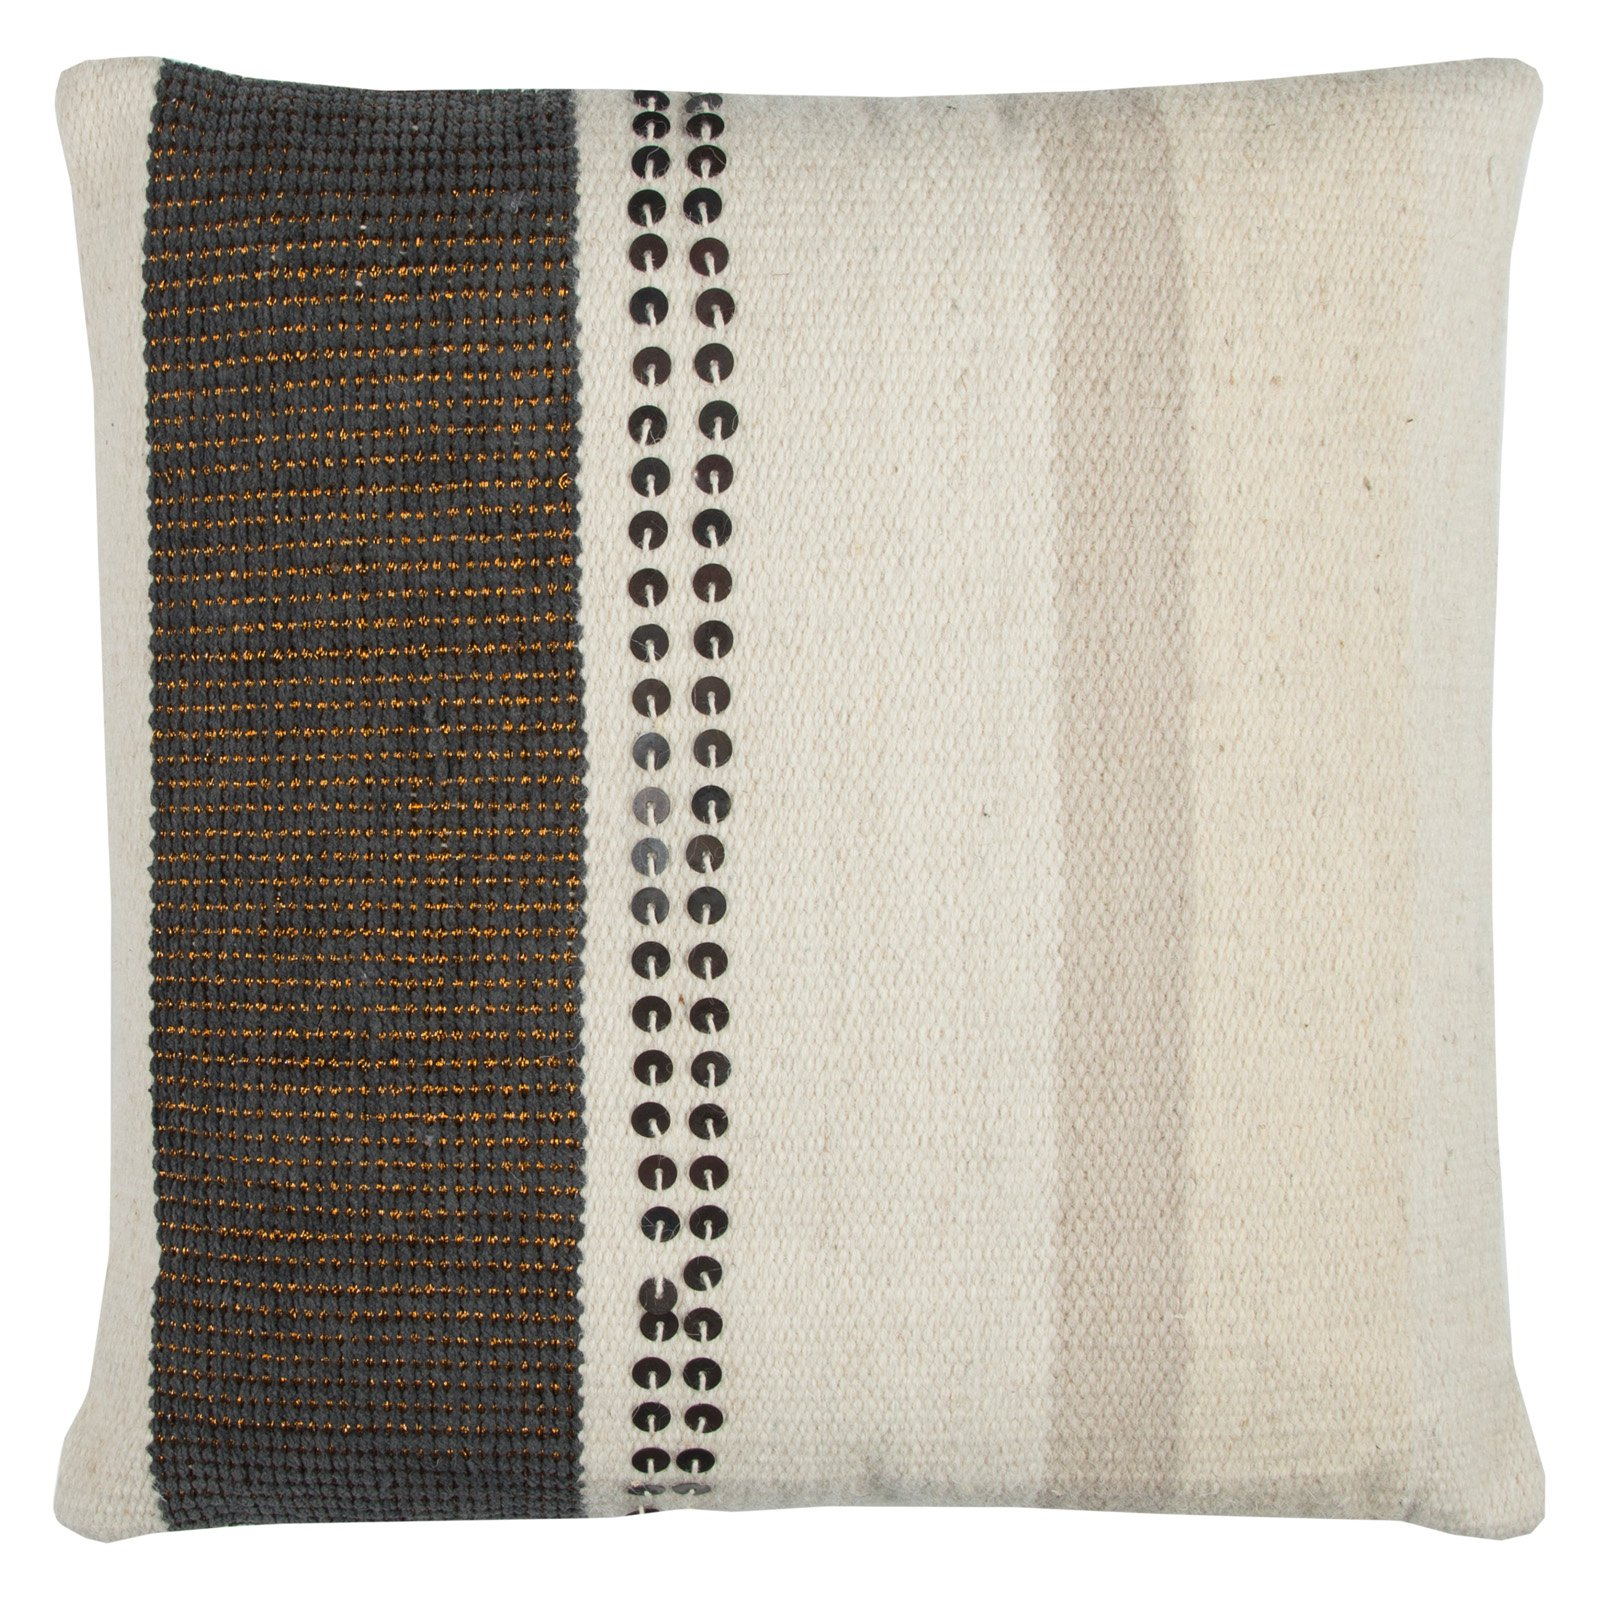 Rizzy Home Vertical Stripe Kilim20X20Cottondecorative filled pillow